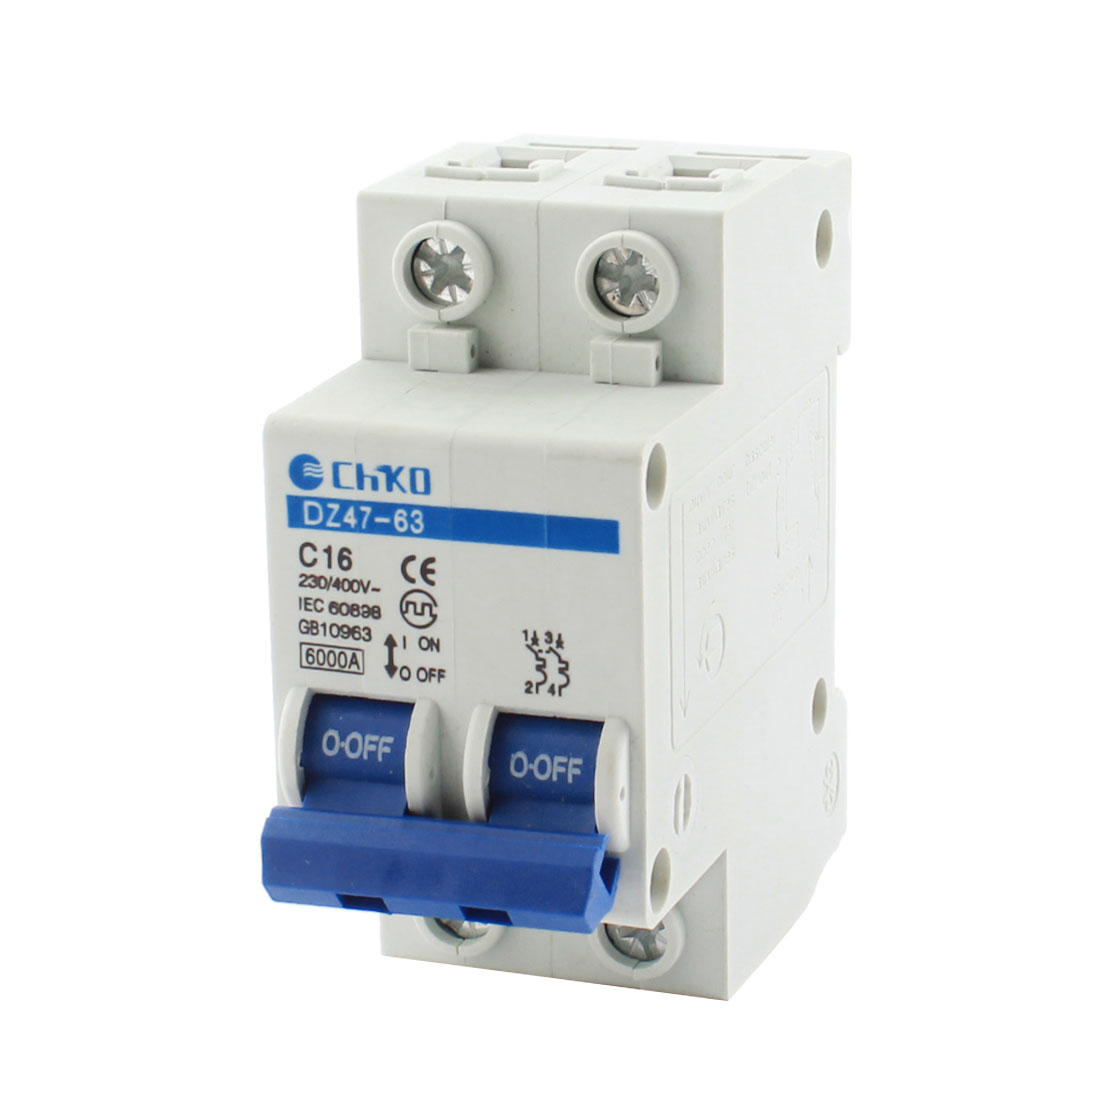 6000A Breaking Capacity 2 Pole Overload Miniature Circuit Breaker AC 230/400V 16Amp DZ47-63 C16